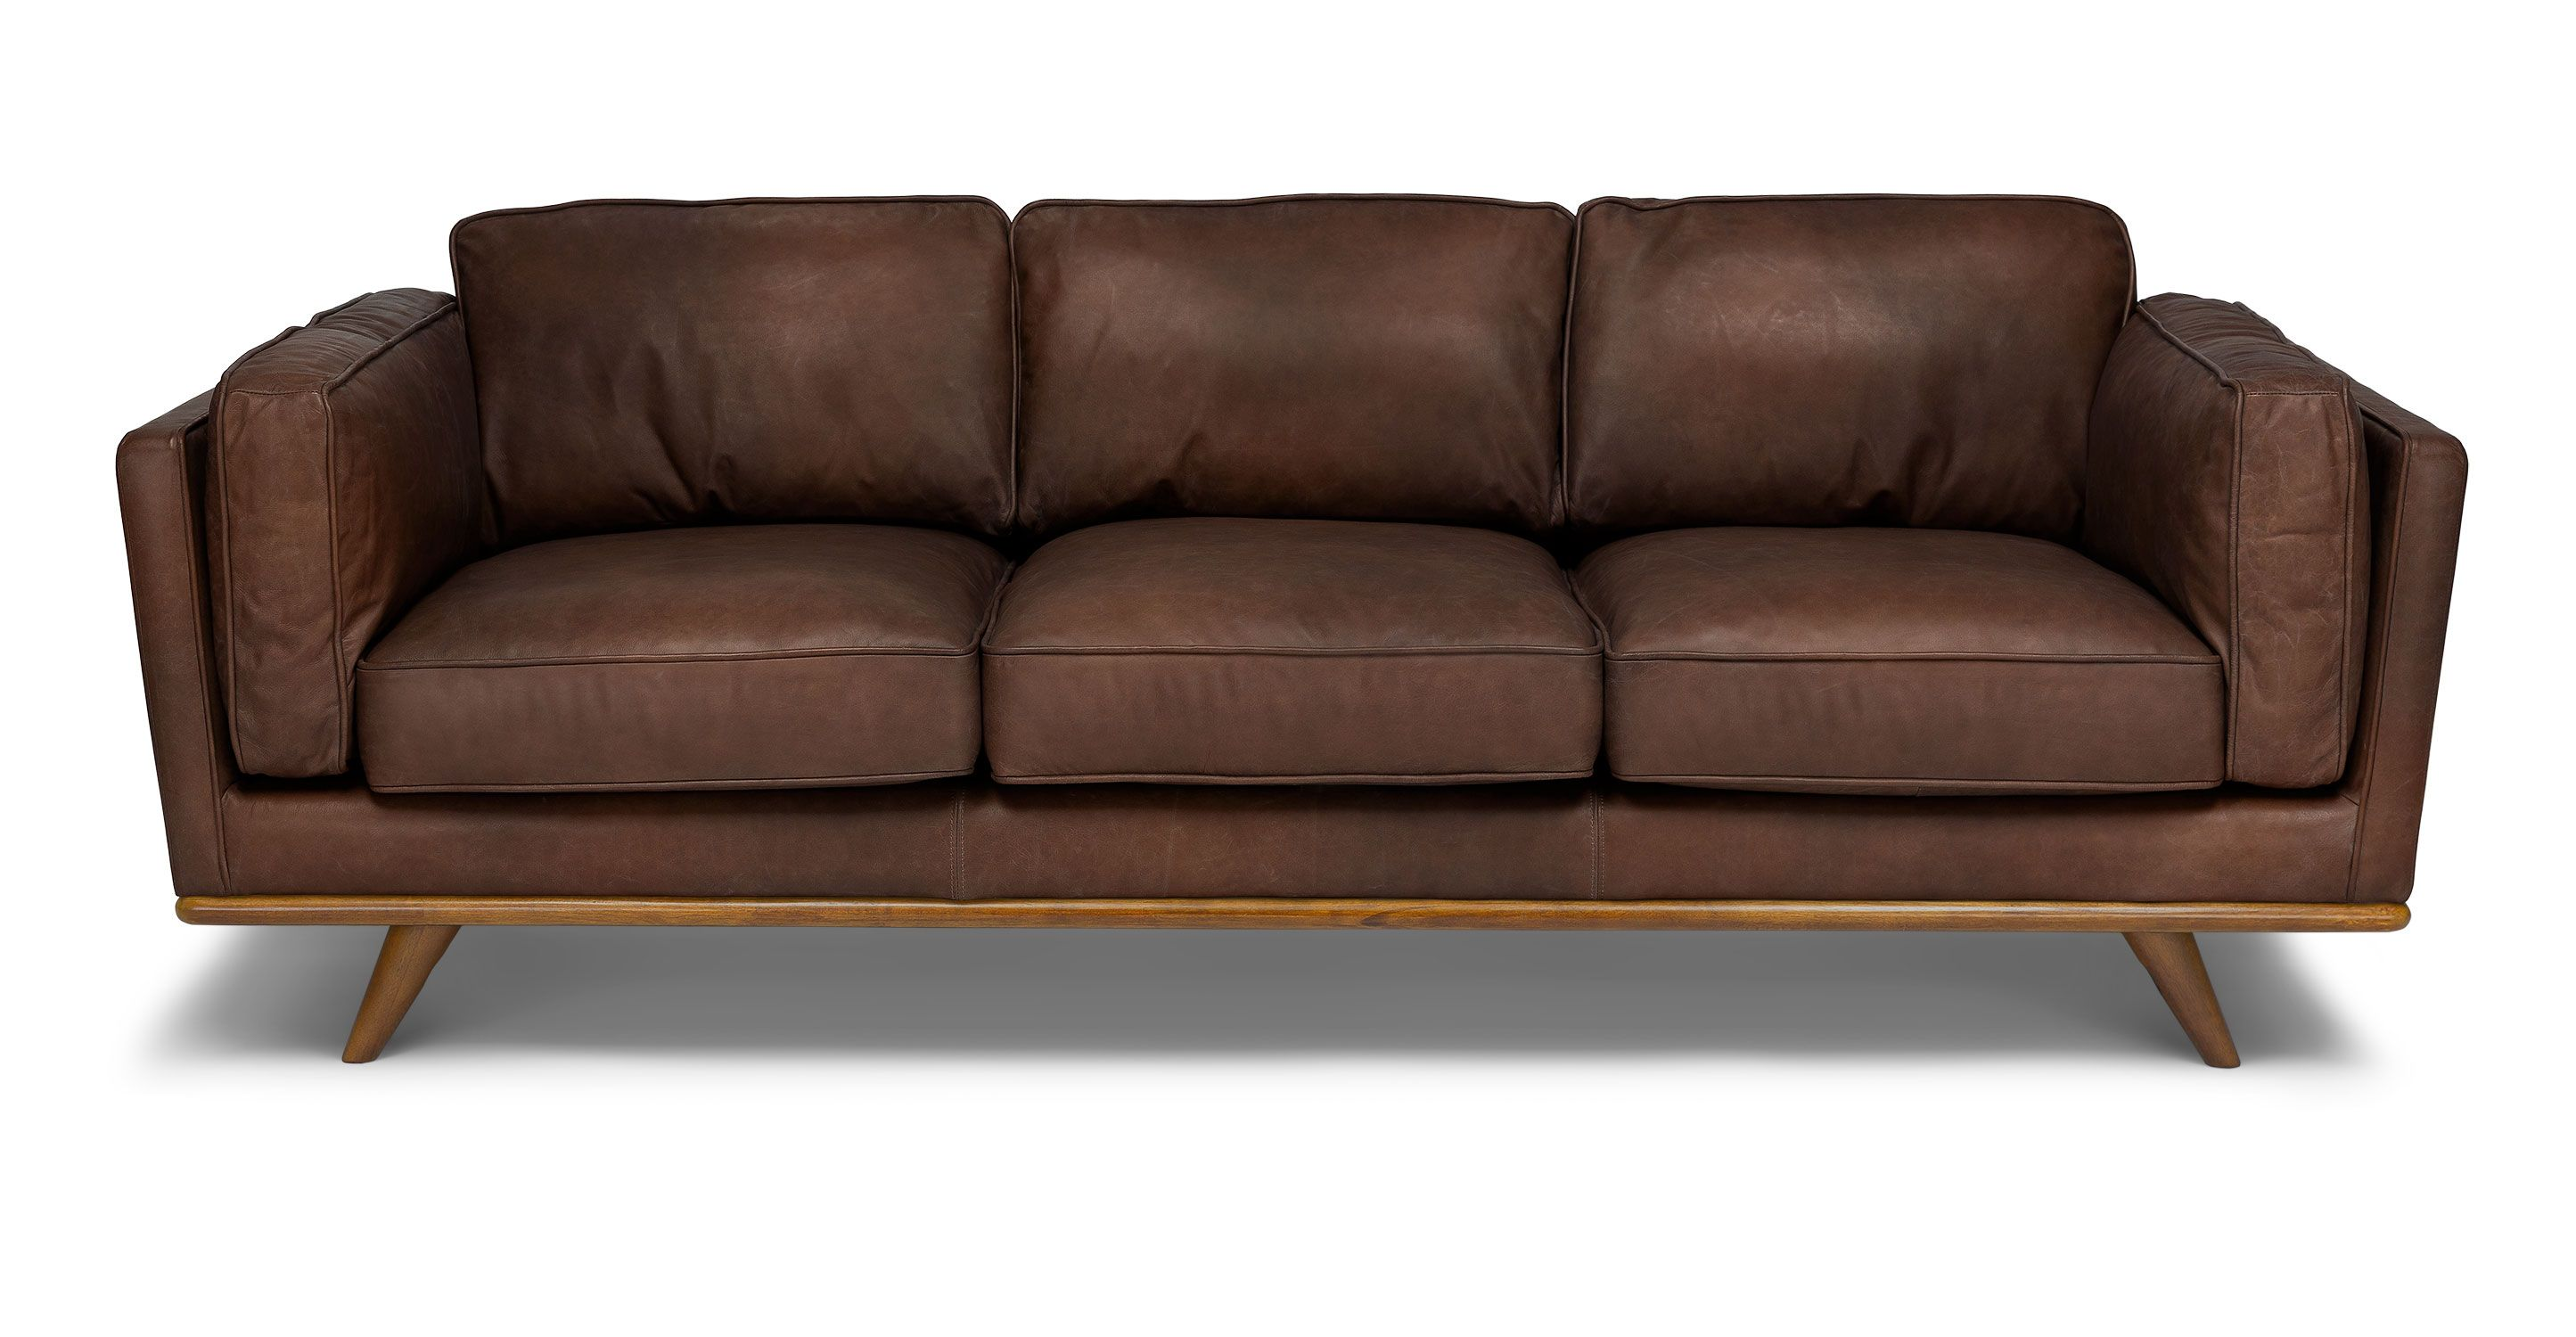 Reviewed The Most Comfortable Sofas at Article Comfortable sofa